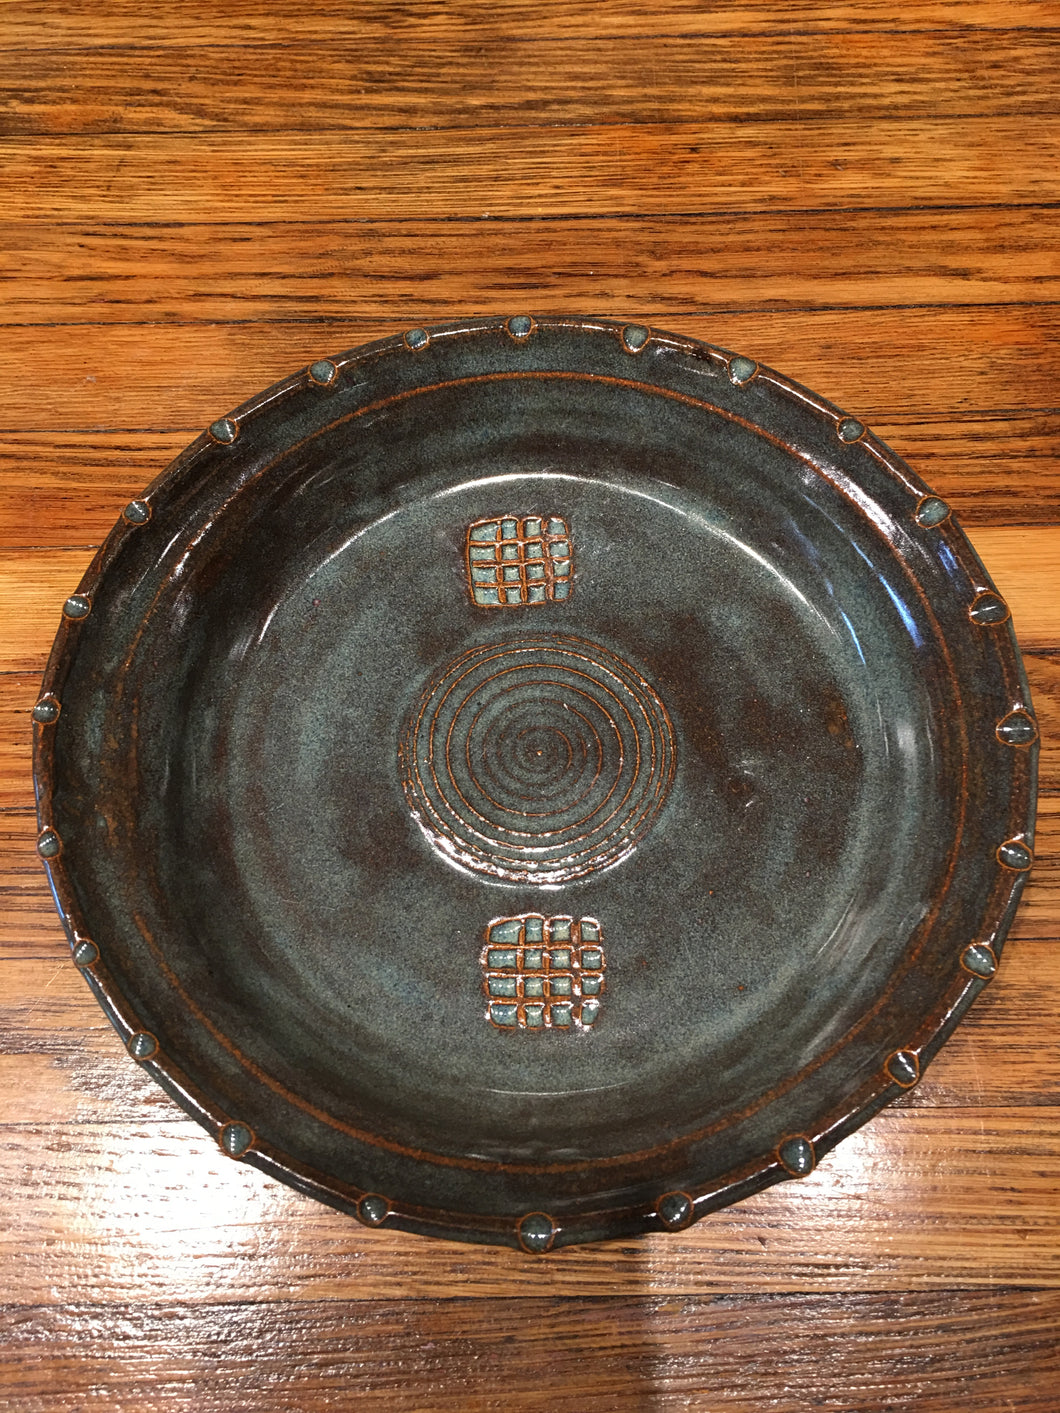 Blue and Brown Plate by Nobel Schuler